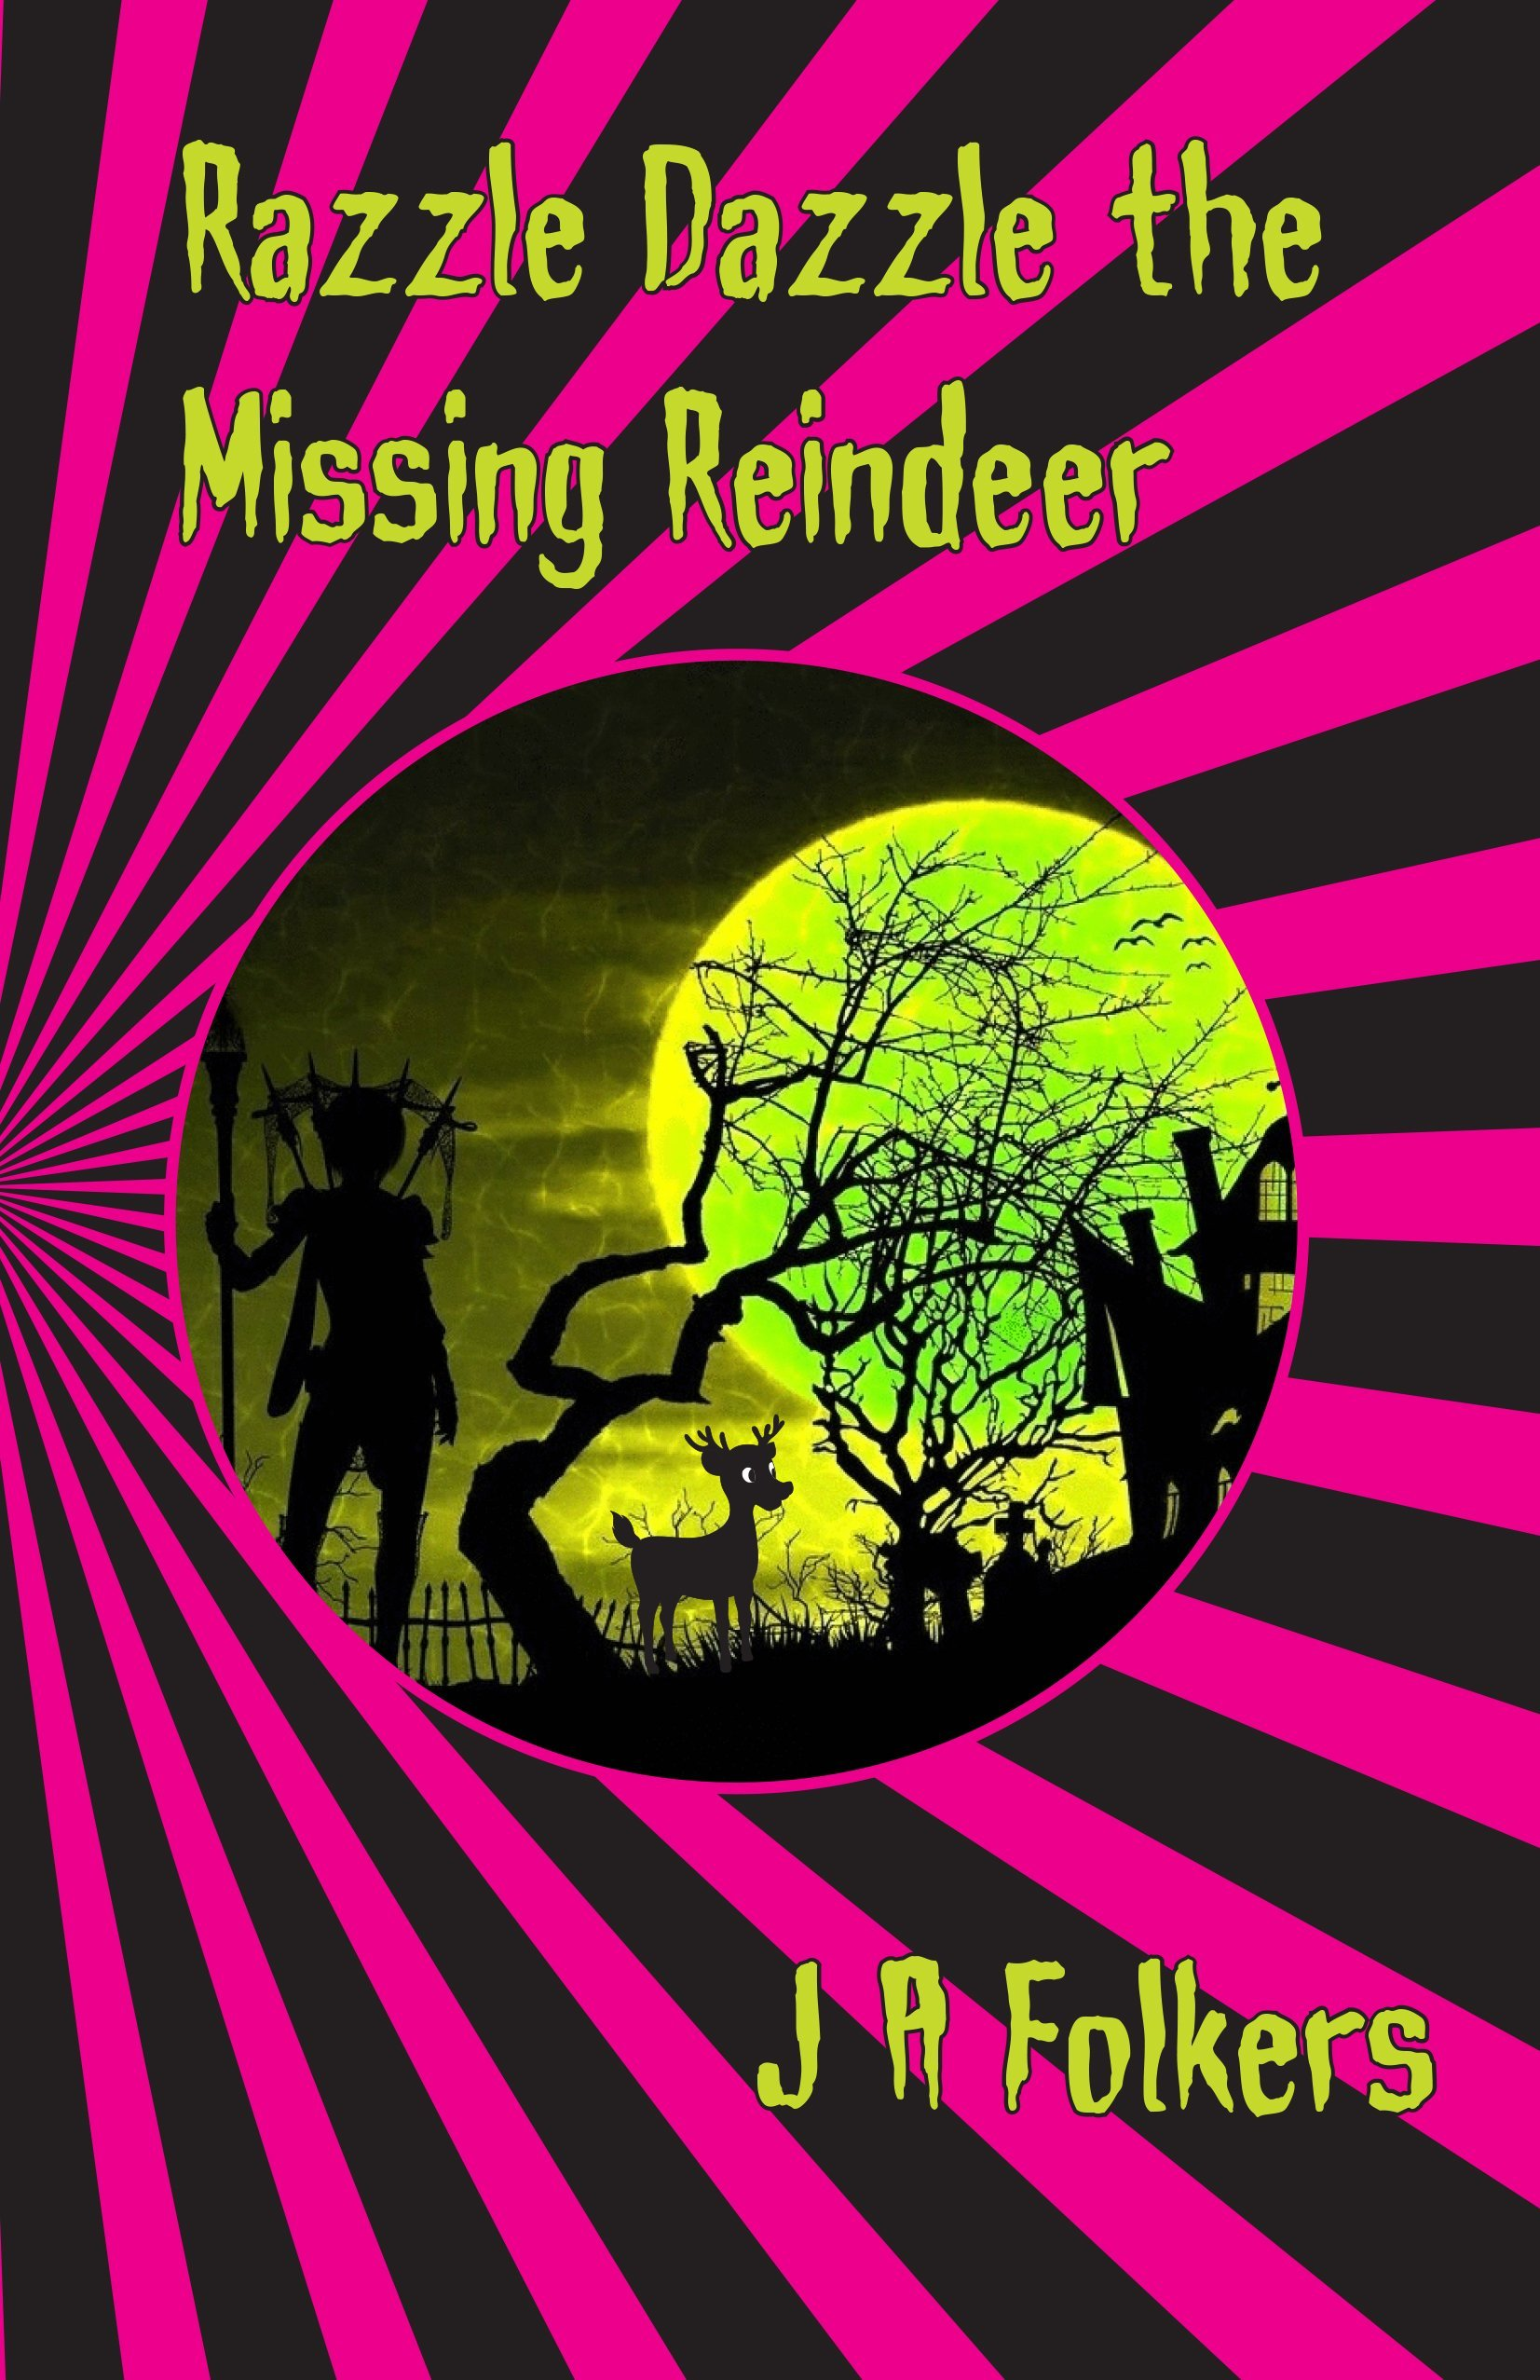 Razzle Dazzle the Missing Reindeer cover page